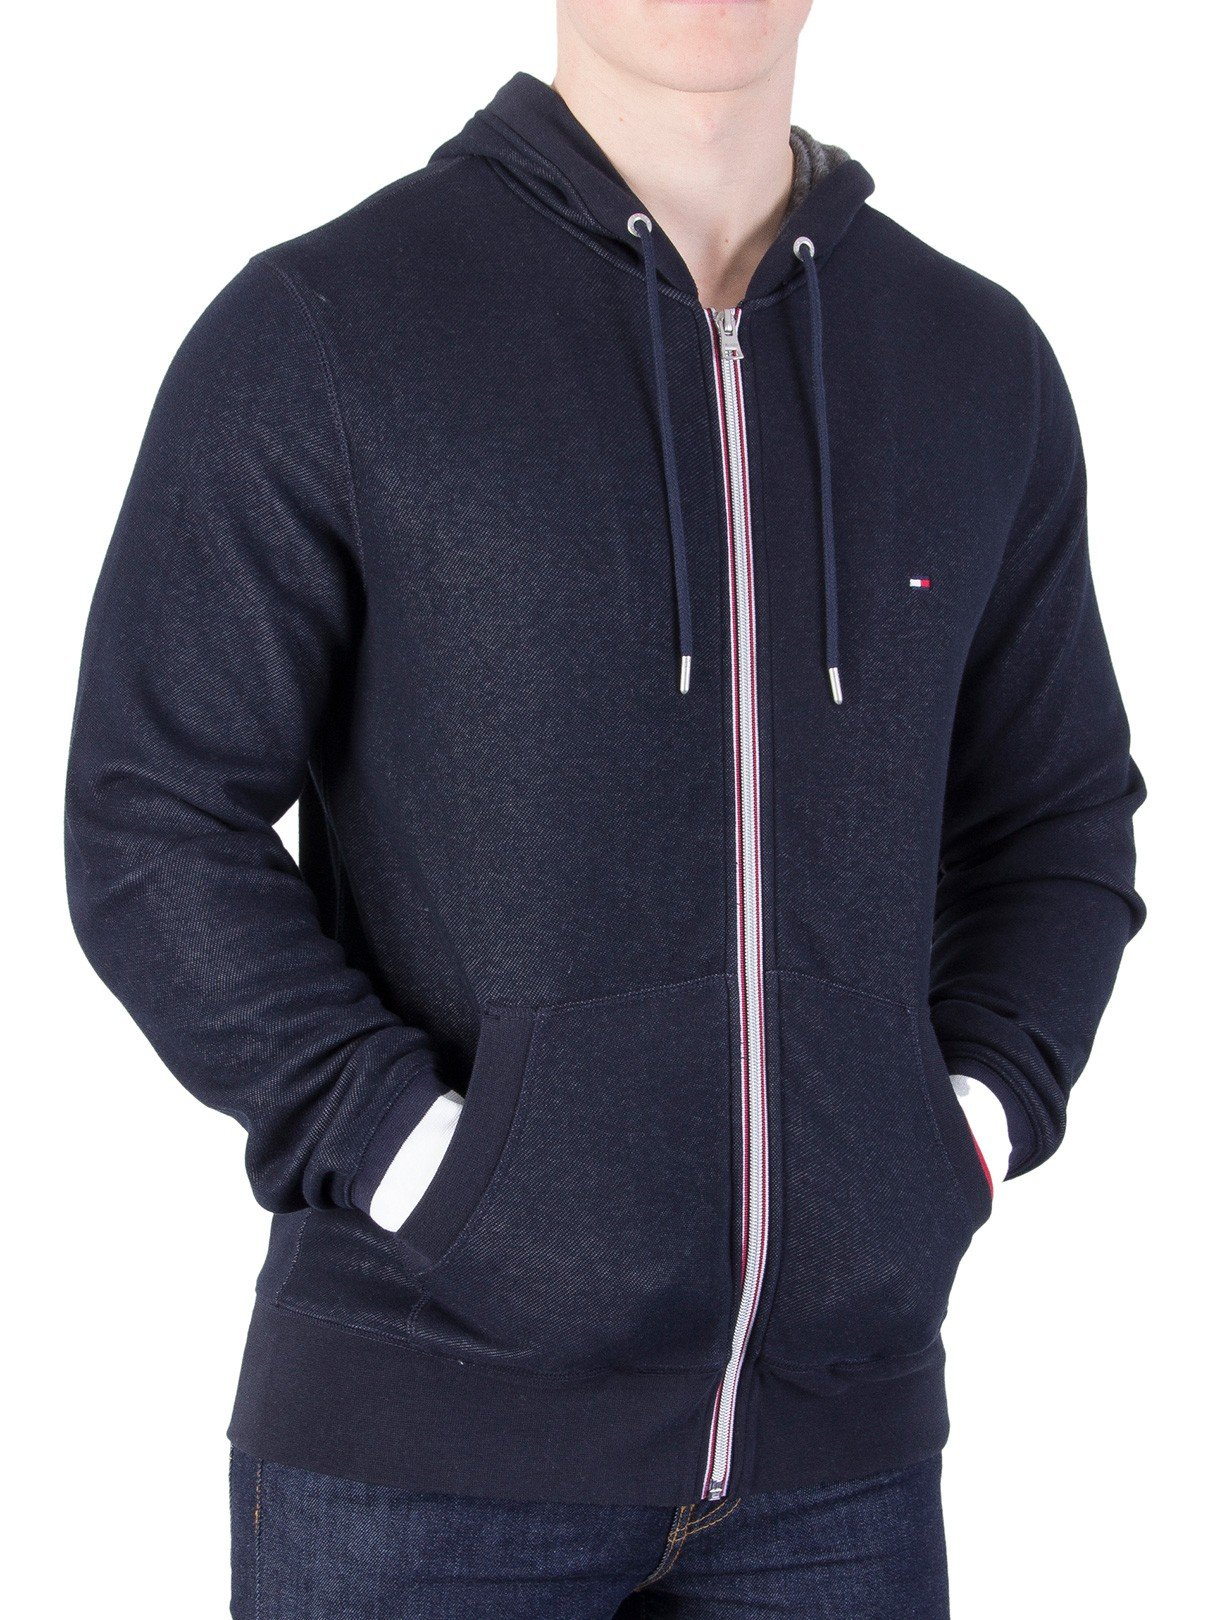 Tommy Hilfiger Men's Sasha Zip Hoodie, Blue, Large